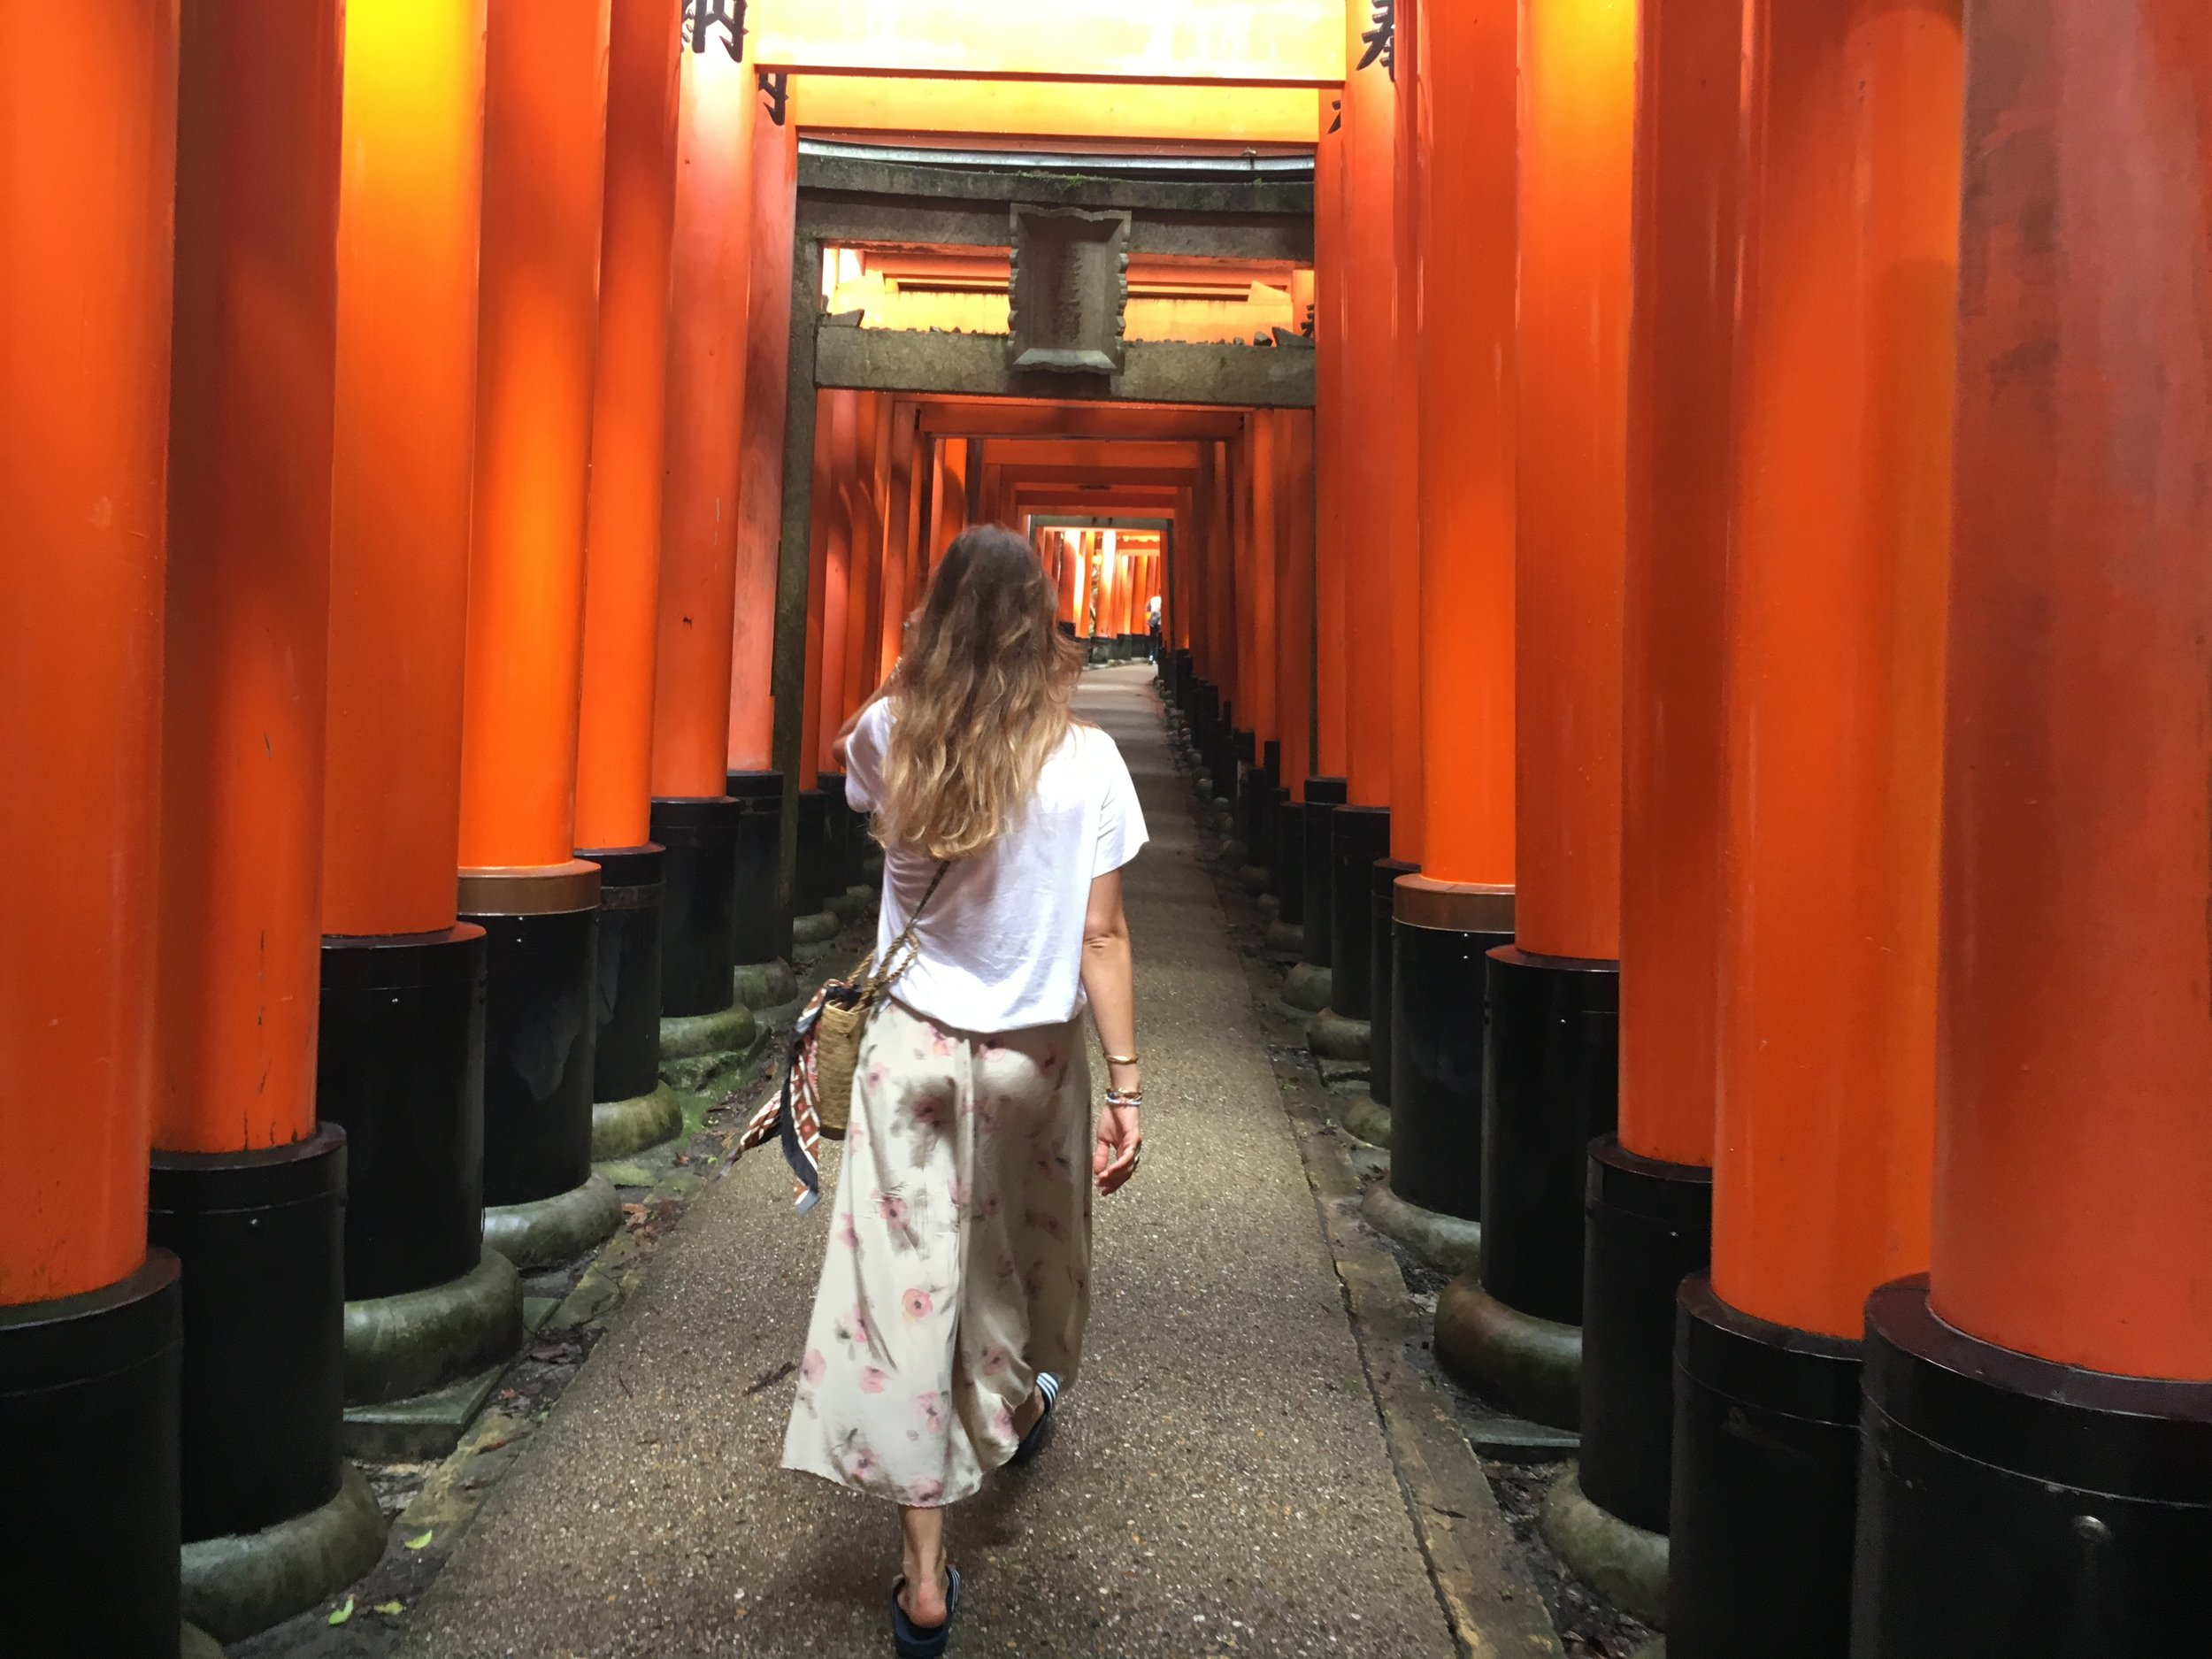 EMILY_LEVINE_HOTEL_WEEKEND_TRIP_TO_JAPAN35.jpeg